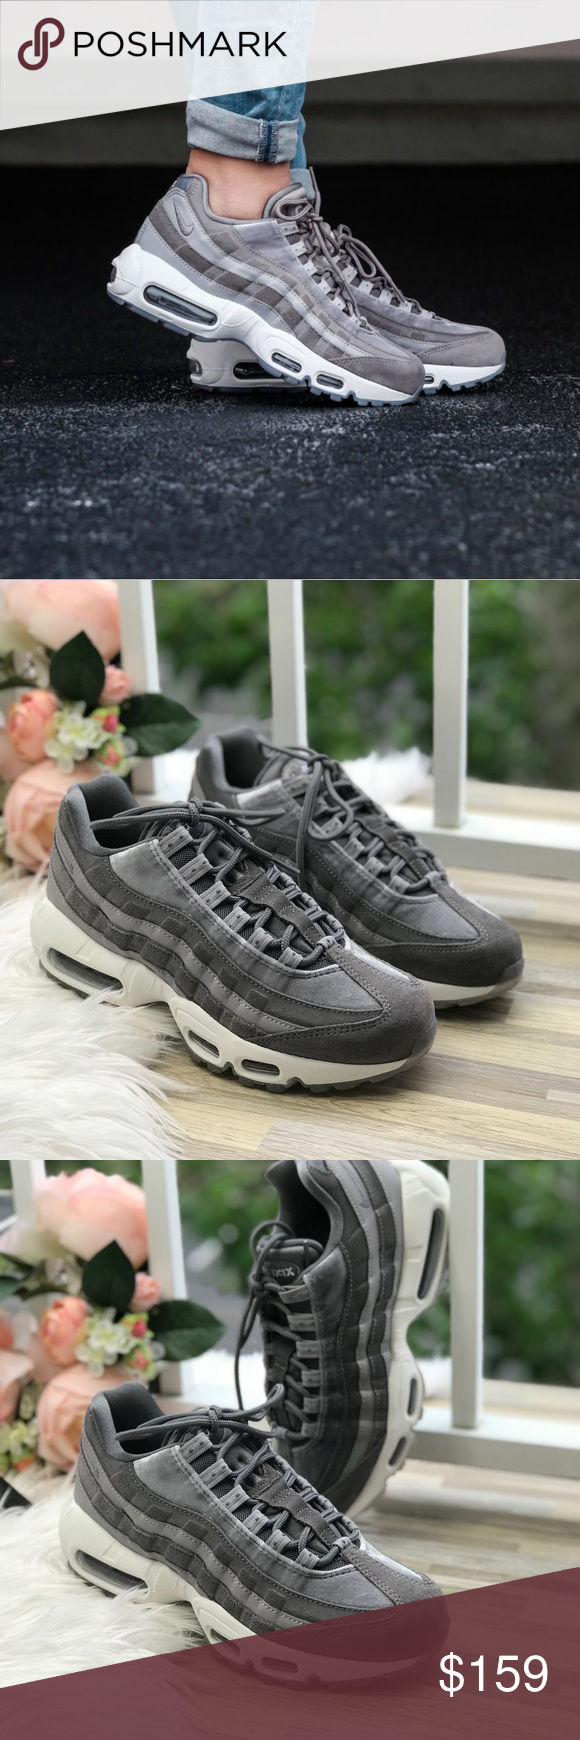 9da3395ad3 NWT Air Max 95 LX Gunsmoke WMNS Brand new with box, no lid. Price is ...